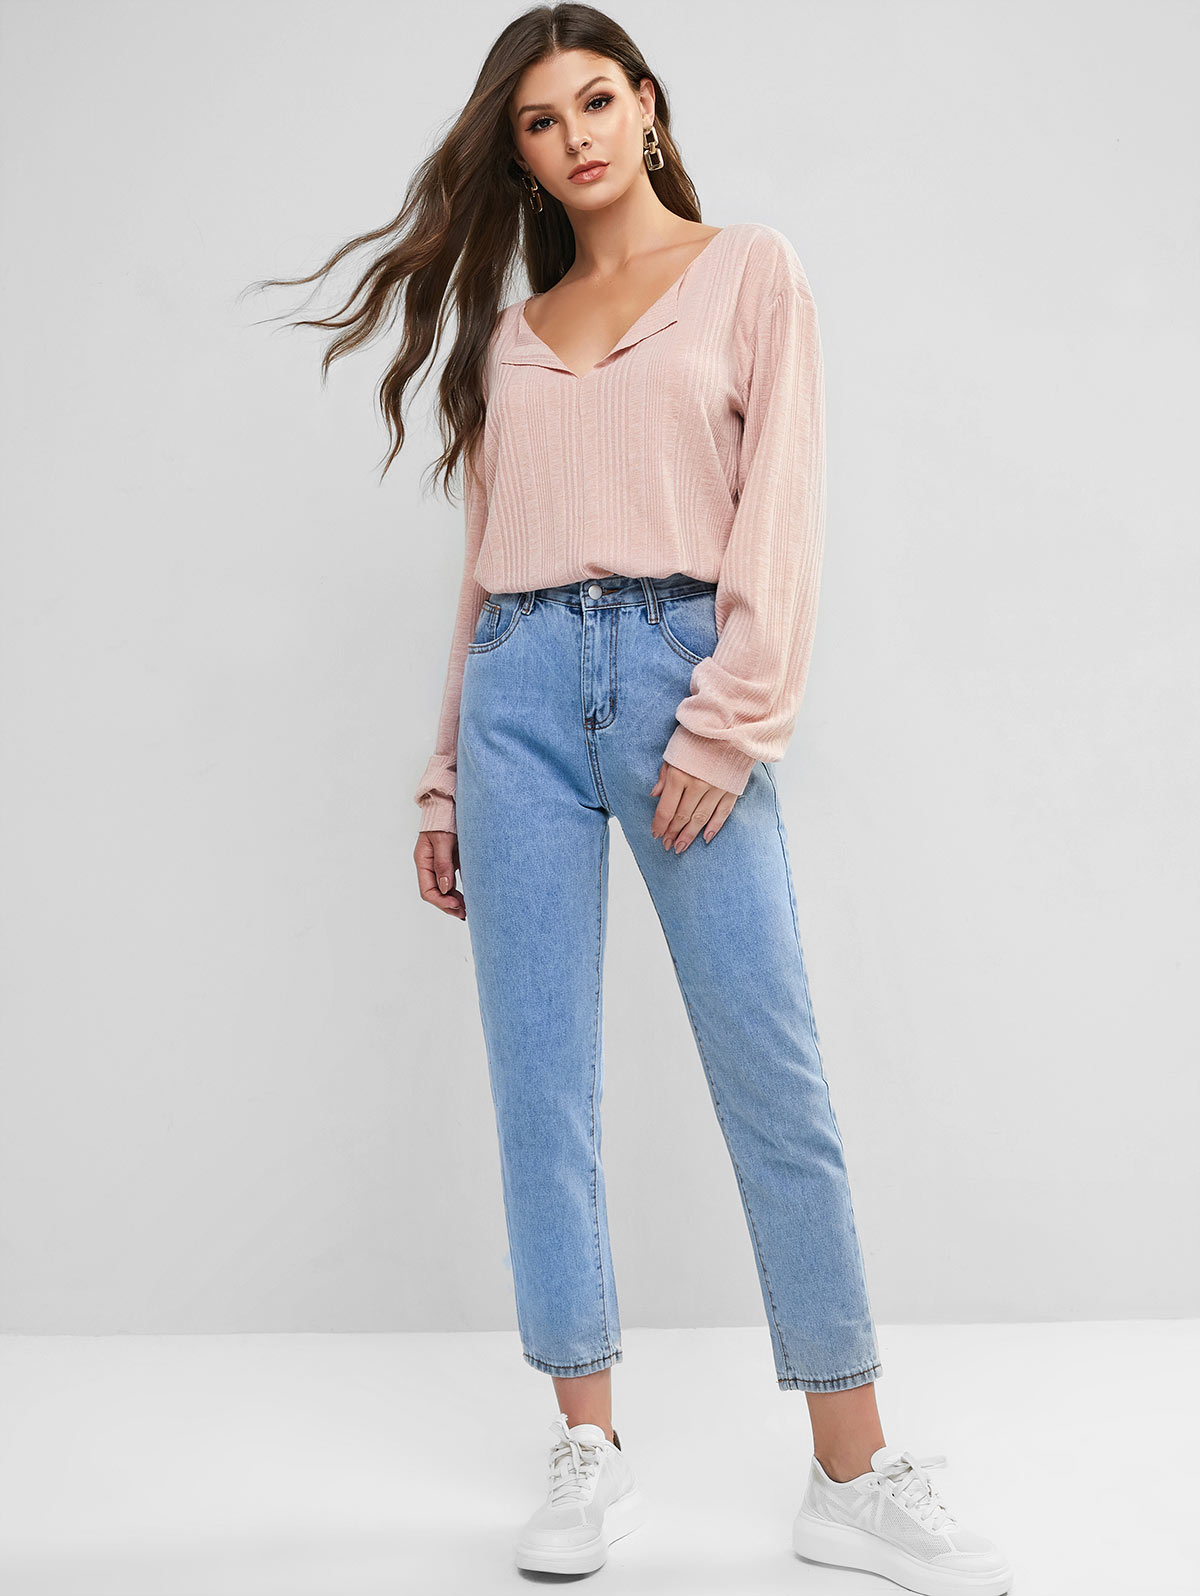 ZAFUL Lady Basic Straight Jeans Woman Casual Blue Loose Long Pants All-match Simple Elegant Daily Ladies 2019